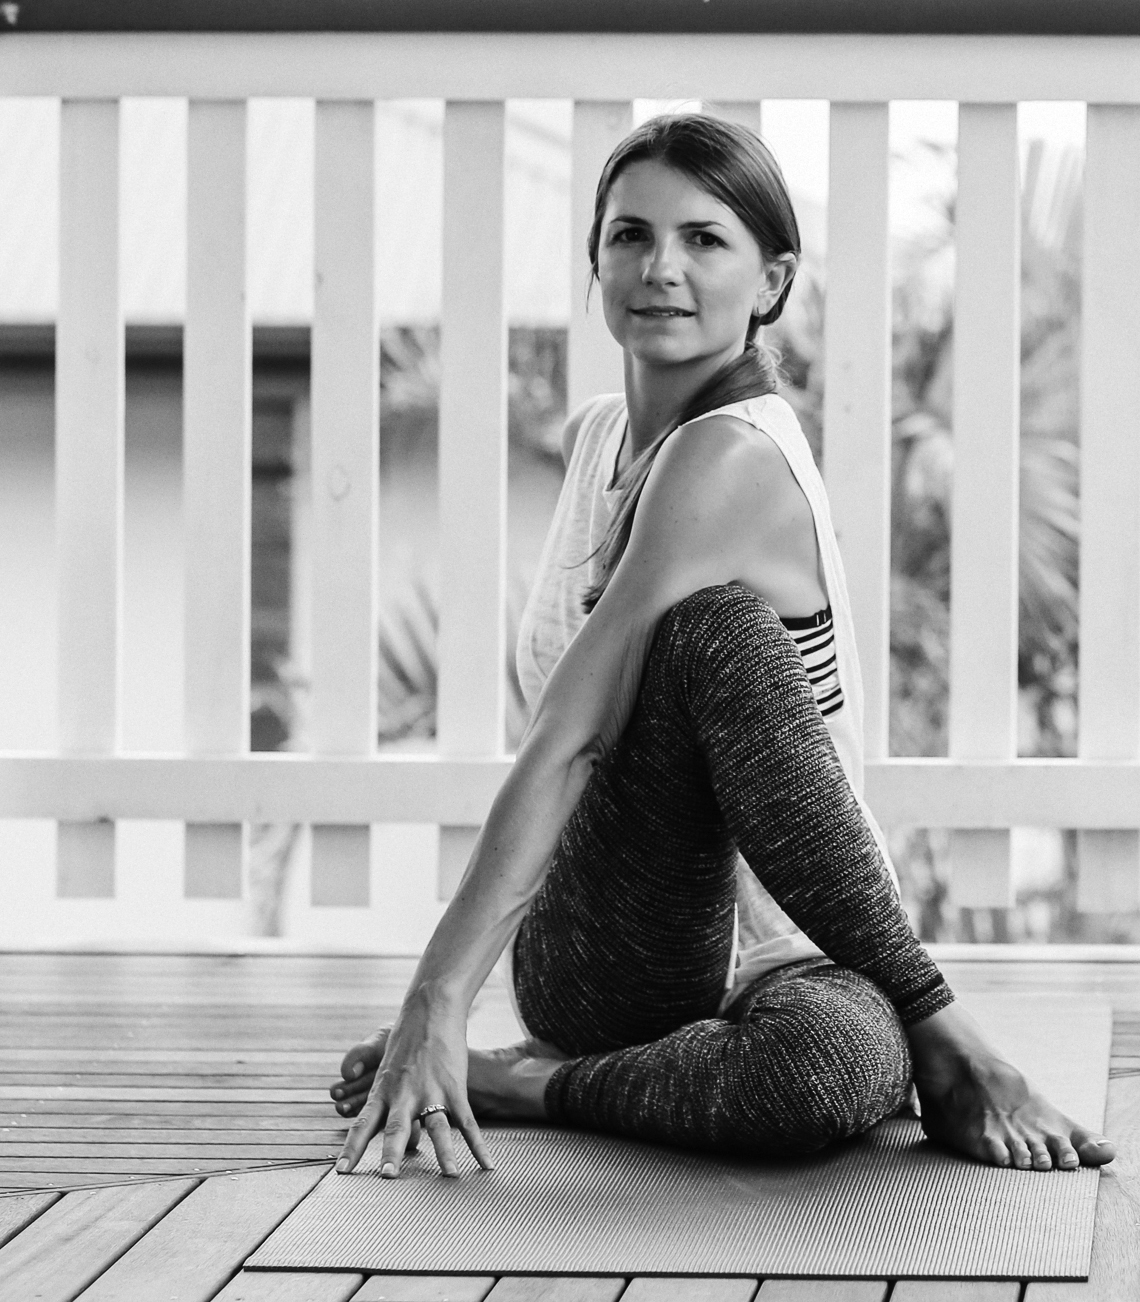 Sarah Campbell  completed her Hatha Yoga teacher certificate in 2008 through Prana Space in Rose Bay, Sydney. She has been teaching yoga classes, holding retreats and giving odd cooking class in Yamba since then. She also completed a prenatal yoga course through Byron Yoga Centre, studied Thai massage with Ananda Apfelbaum from Sacred Bodywork in New York City and Vedic Meditation with Tim Brown in Sydney.